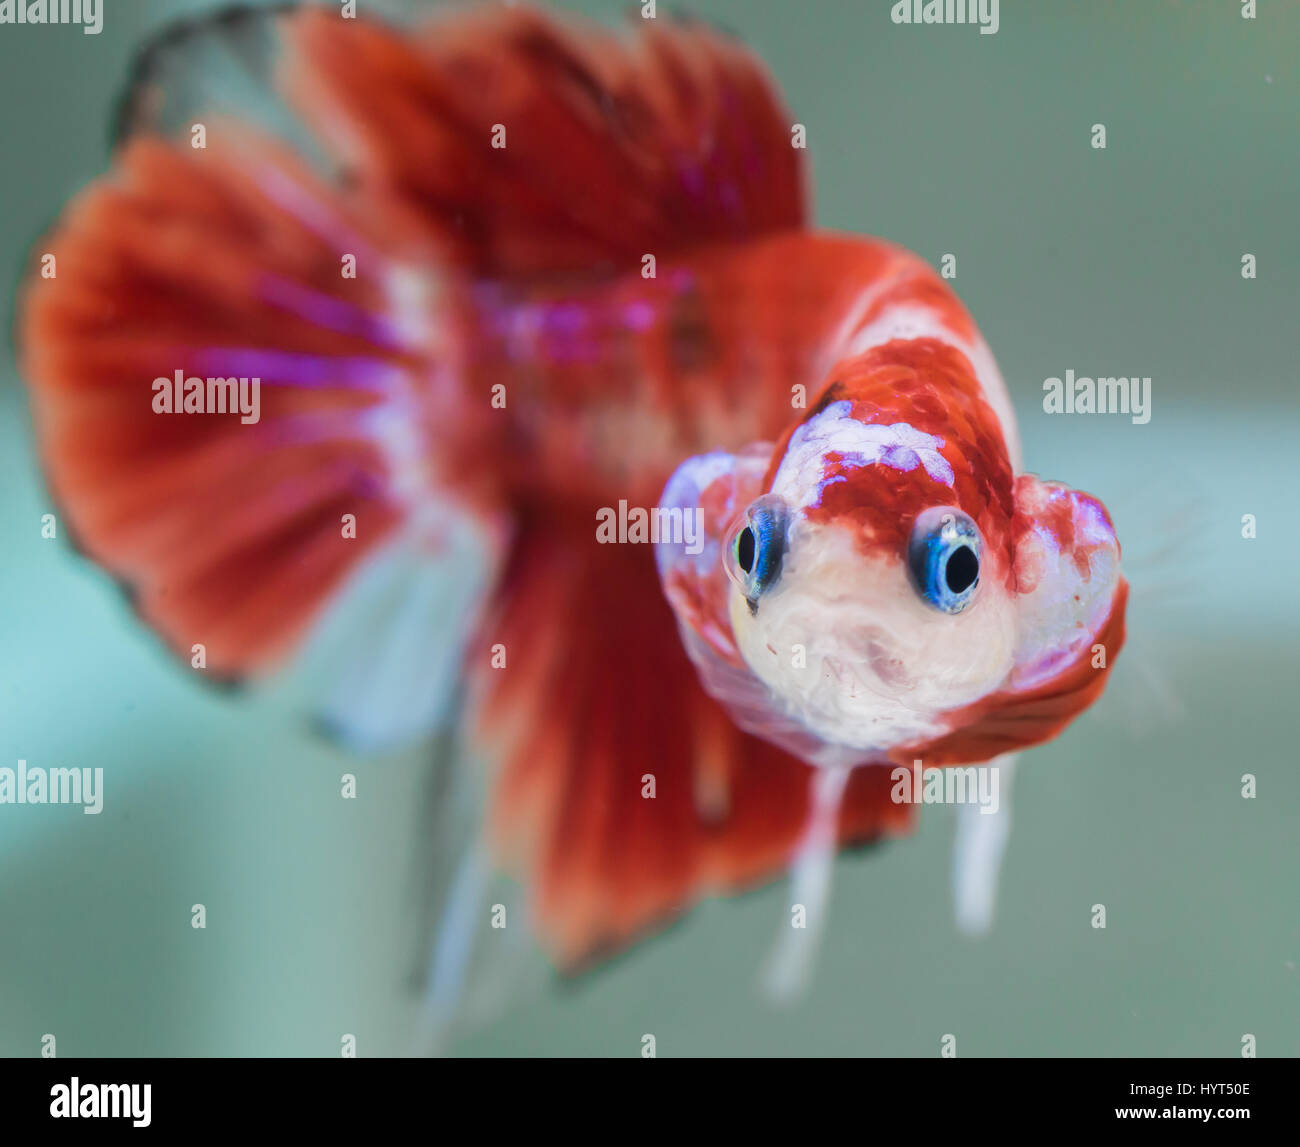 Red Eyed Fish Stock Photos & Red Eyed Fish Stock Images - Alamy